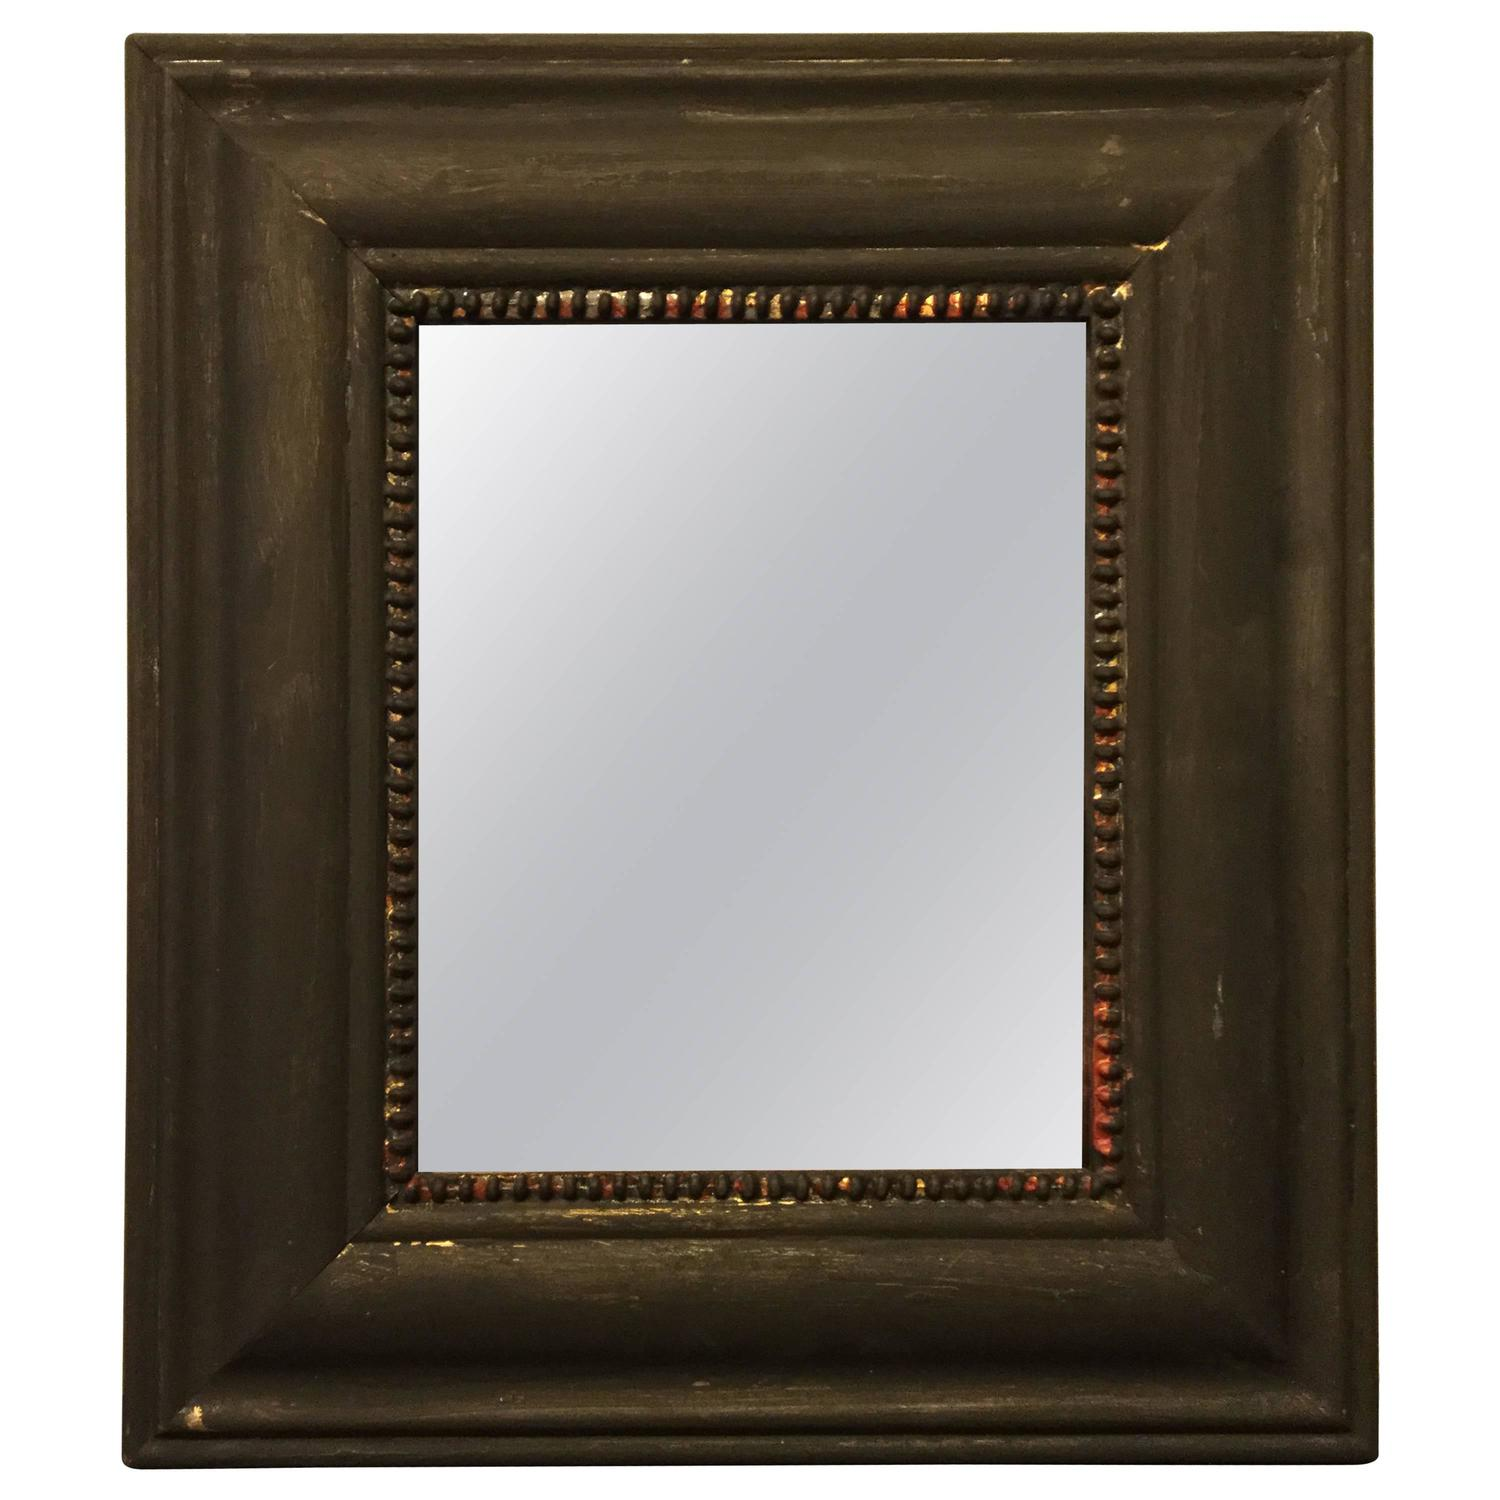 Oldi silver mirror old frame for sale at 1stdibs for Silver mirrors for sale